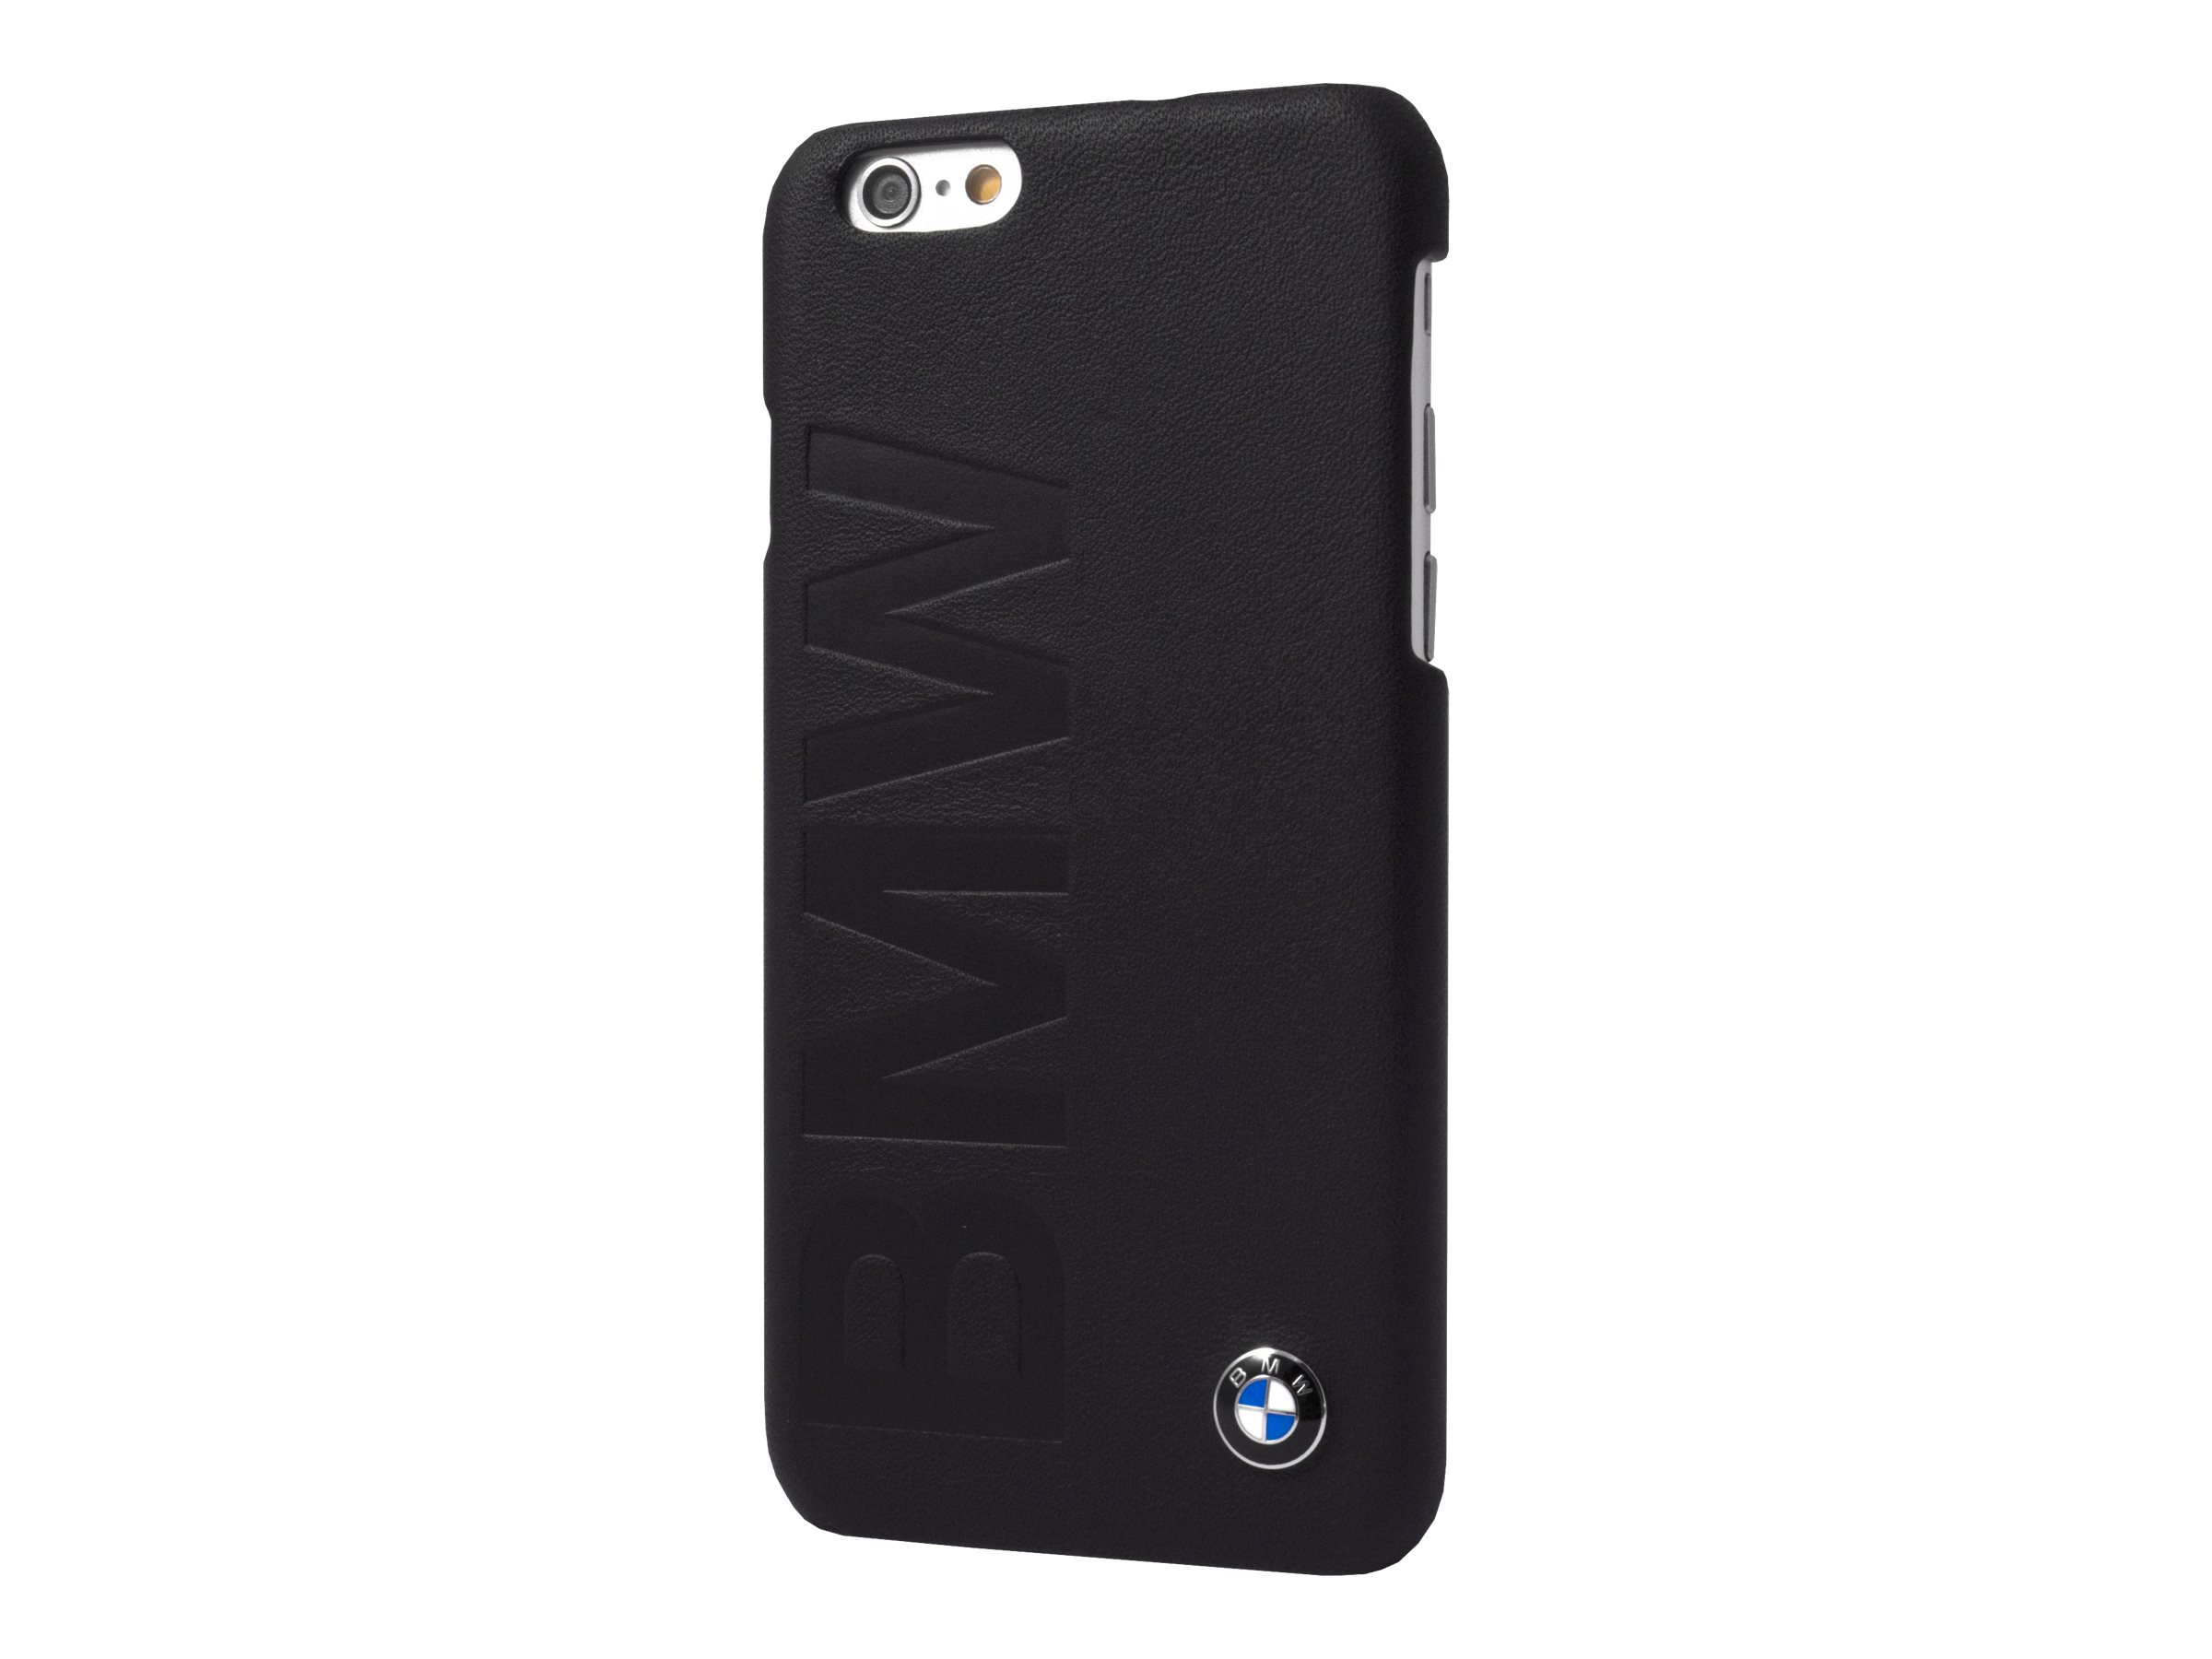 bmw coque de protection pour t l phone portable coques iphone. Black Bedroom Furniture Sets. Home Design Ideas